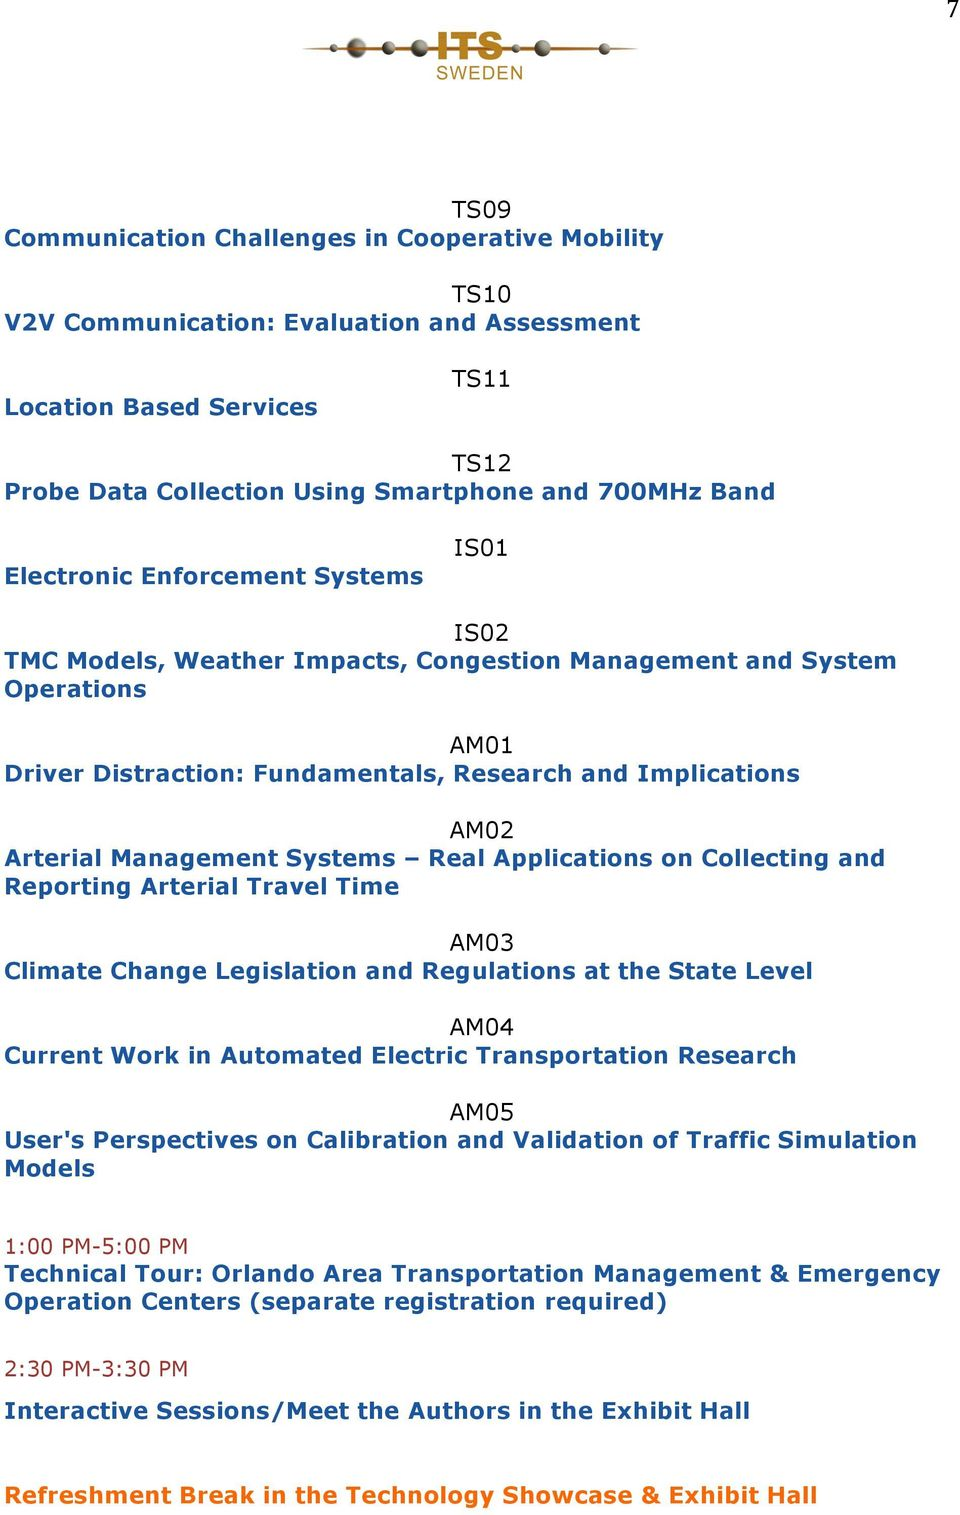 Management Systems Real Applications on Collecting and Reporting Arterial Travel Time AM03 Climate Change Legislation and Regulations at the State Level AM04 Current Work in Automated Electric